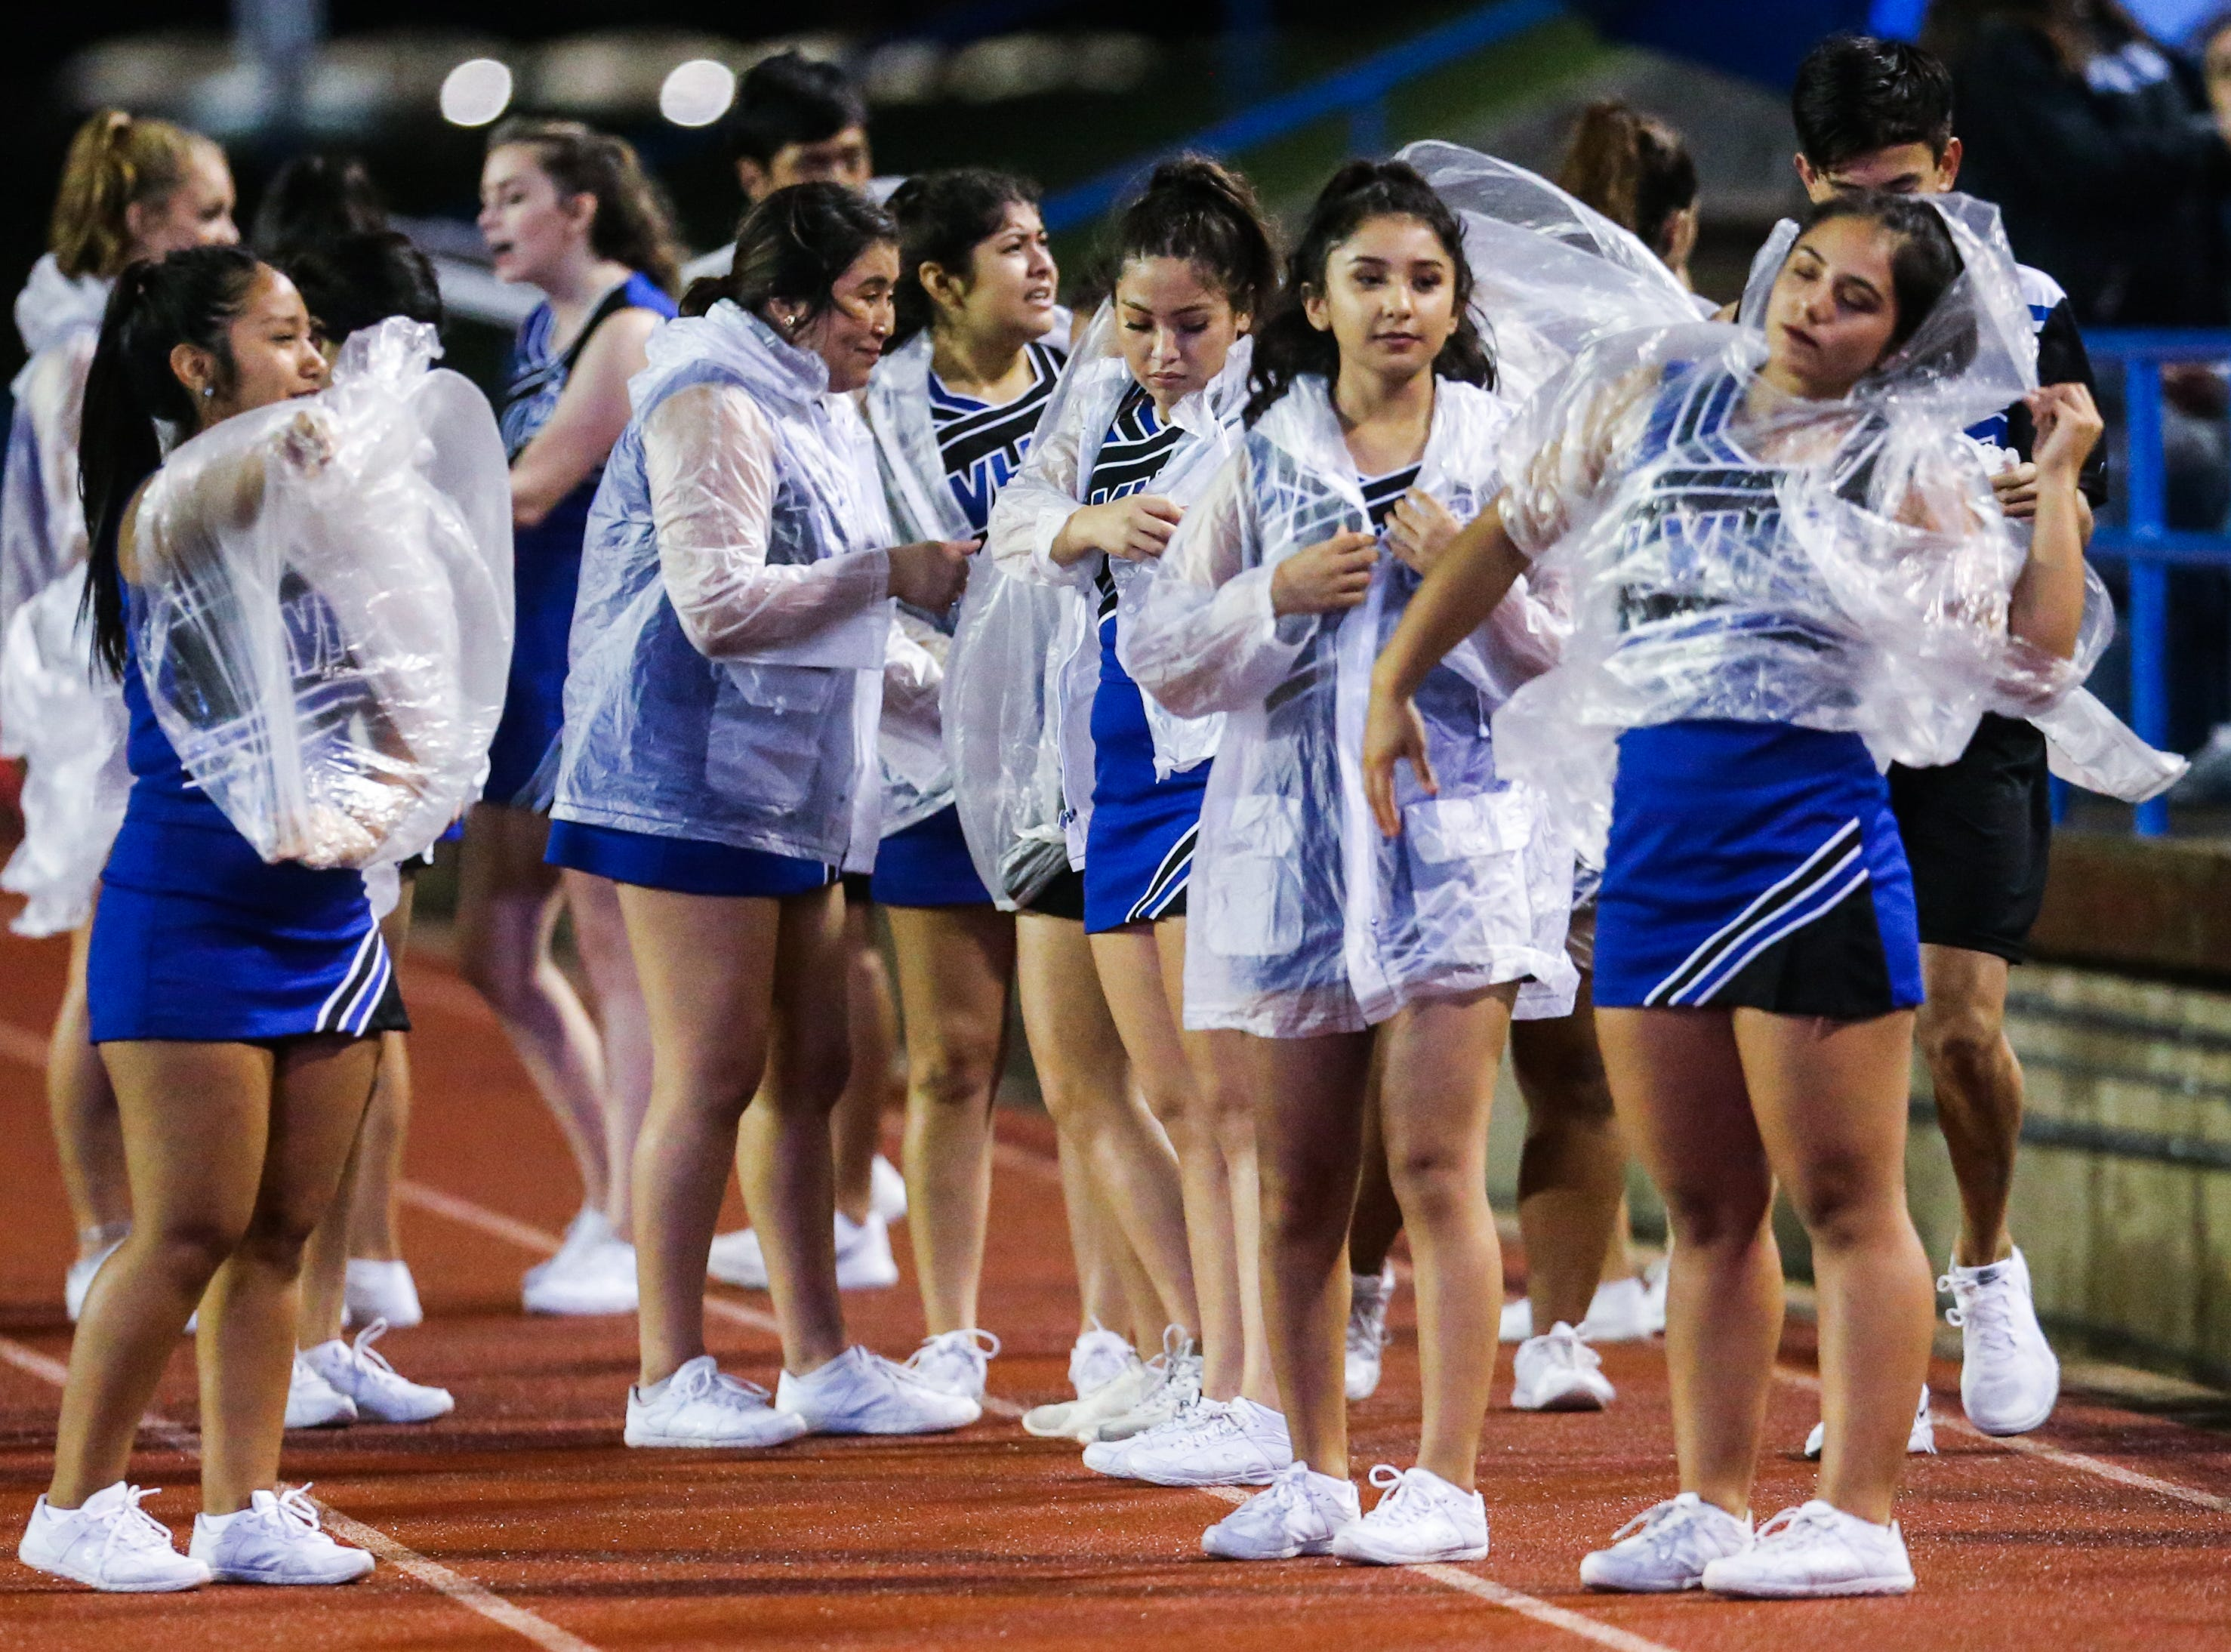 Lake View's cheerleaders put on ponchos during the game against Fabens Friday, Sept. 7, 2018, at San Angelo Stadium.